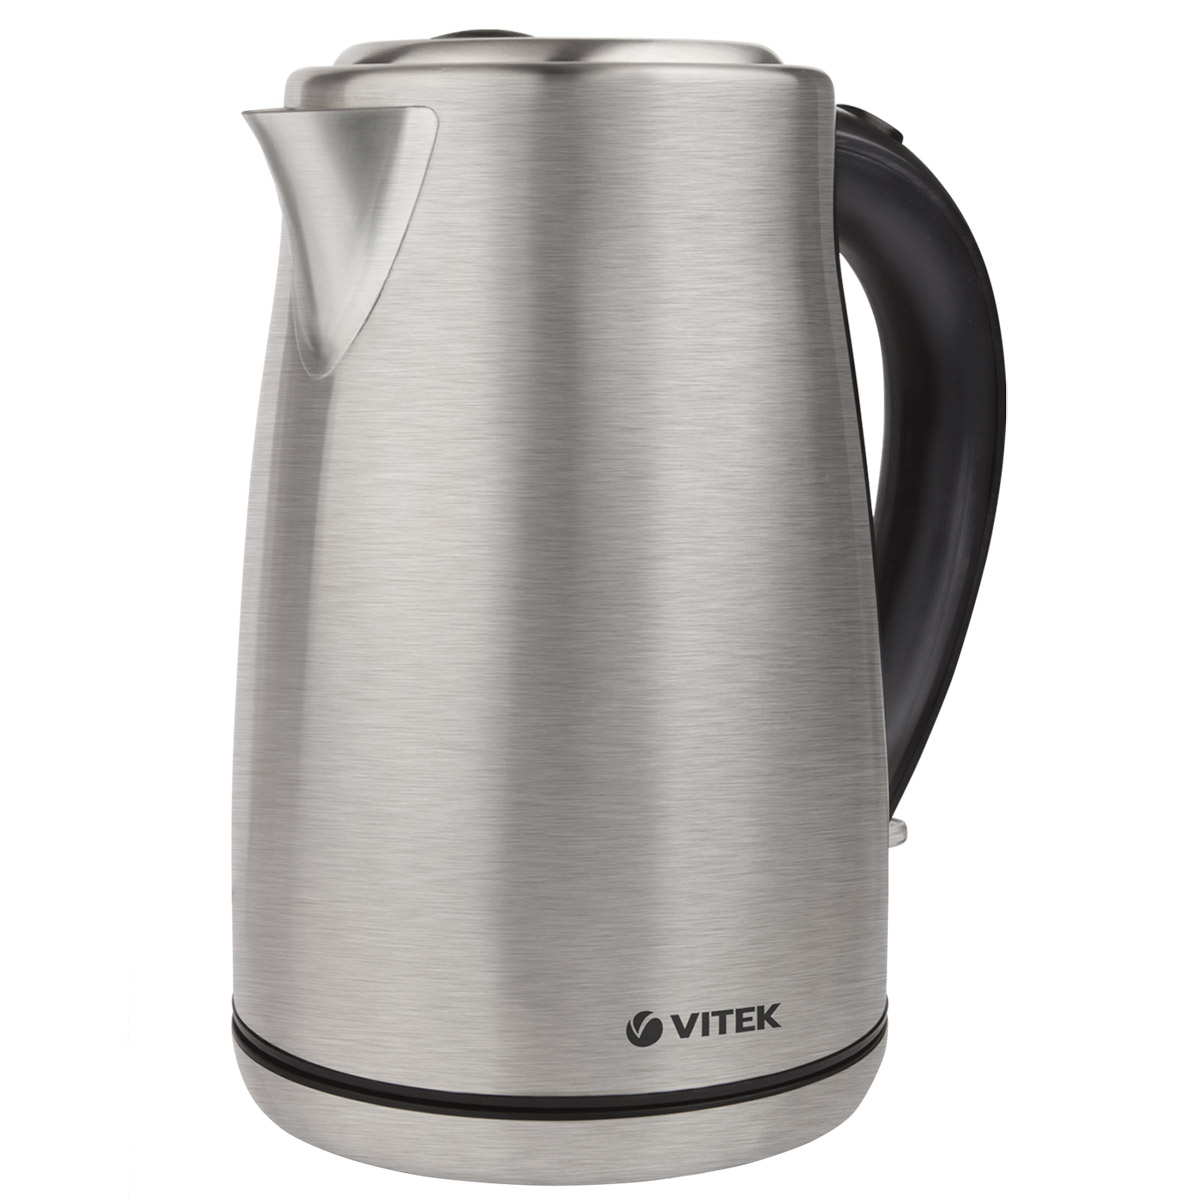 Electric kettle Vitek VT-7020 (ST) (volume 1.7l, stainless steel body, cord storage compartment) electric kettle vitek vt 7007 st